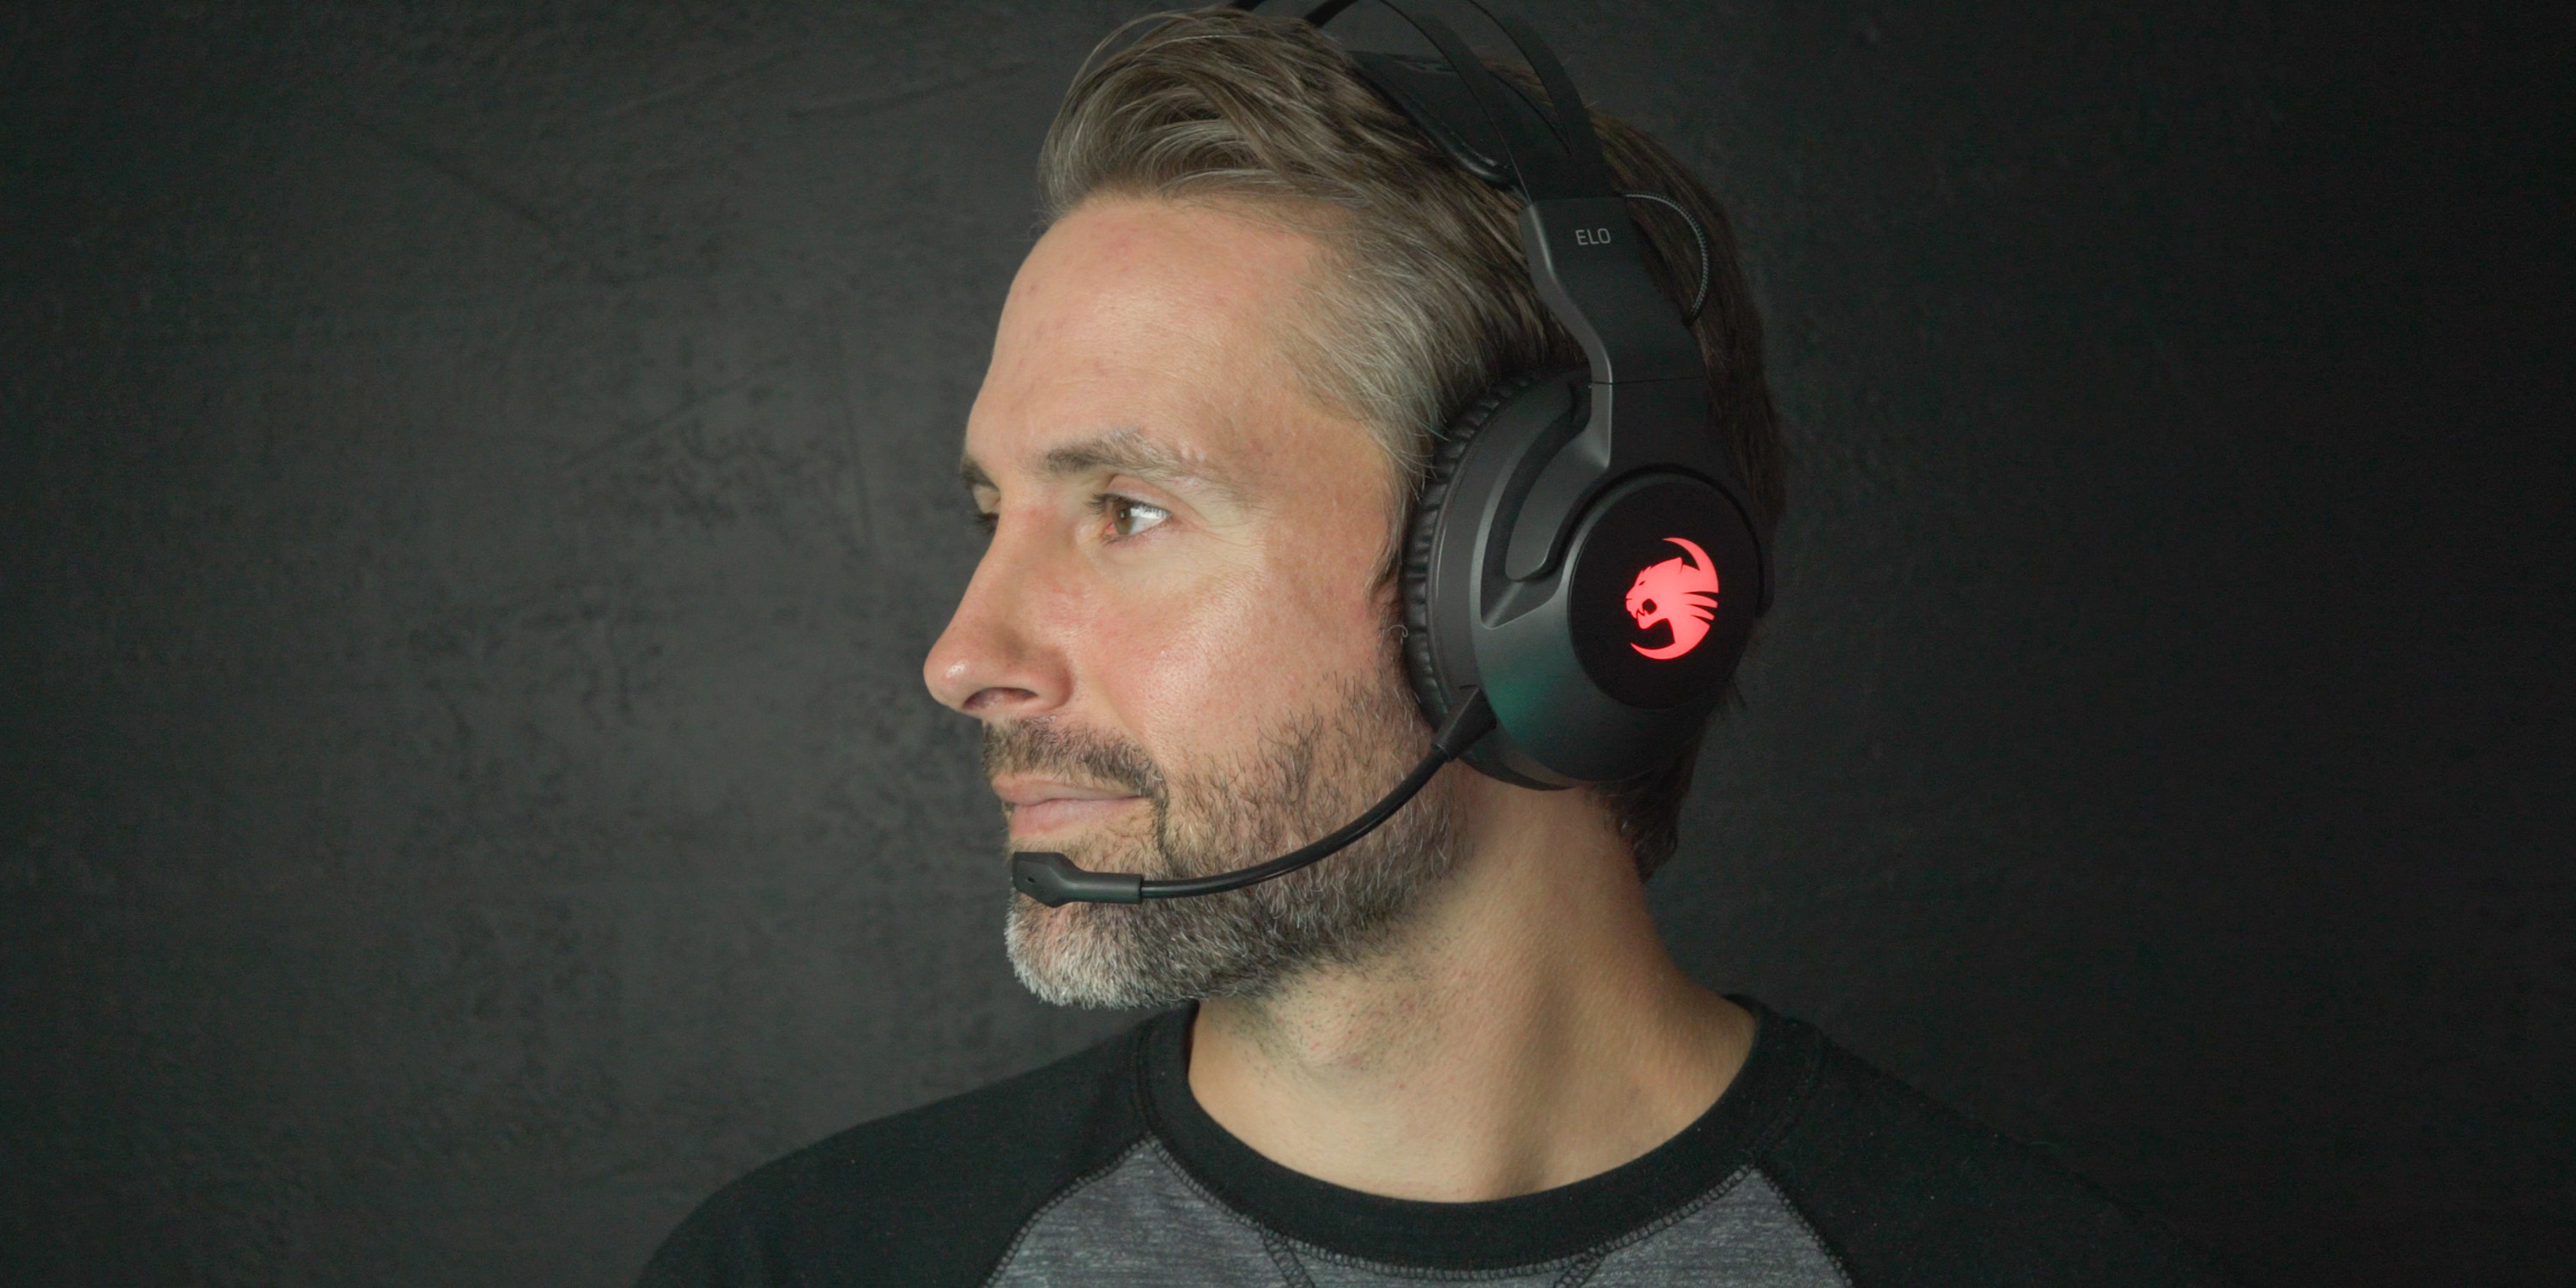 wearing the ROCCAT Elo 7.1 Air headset